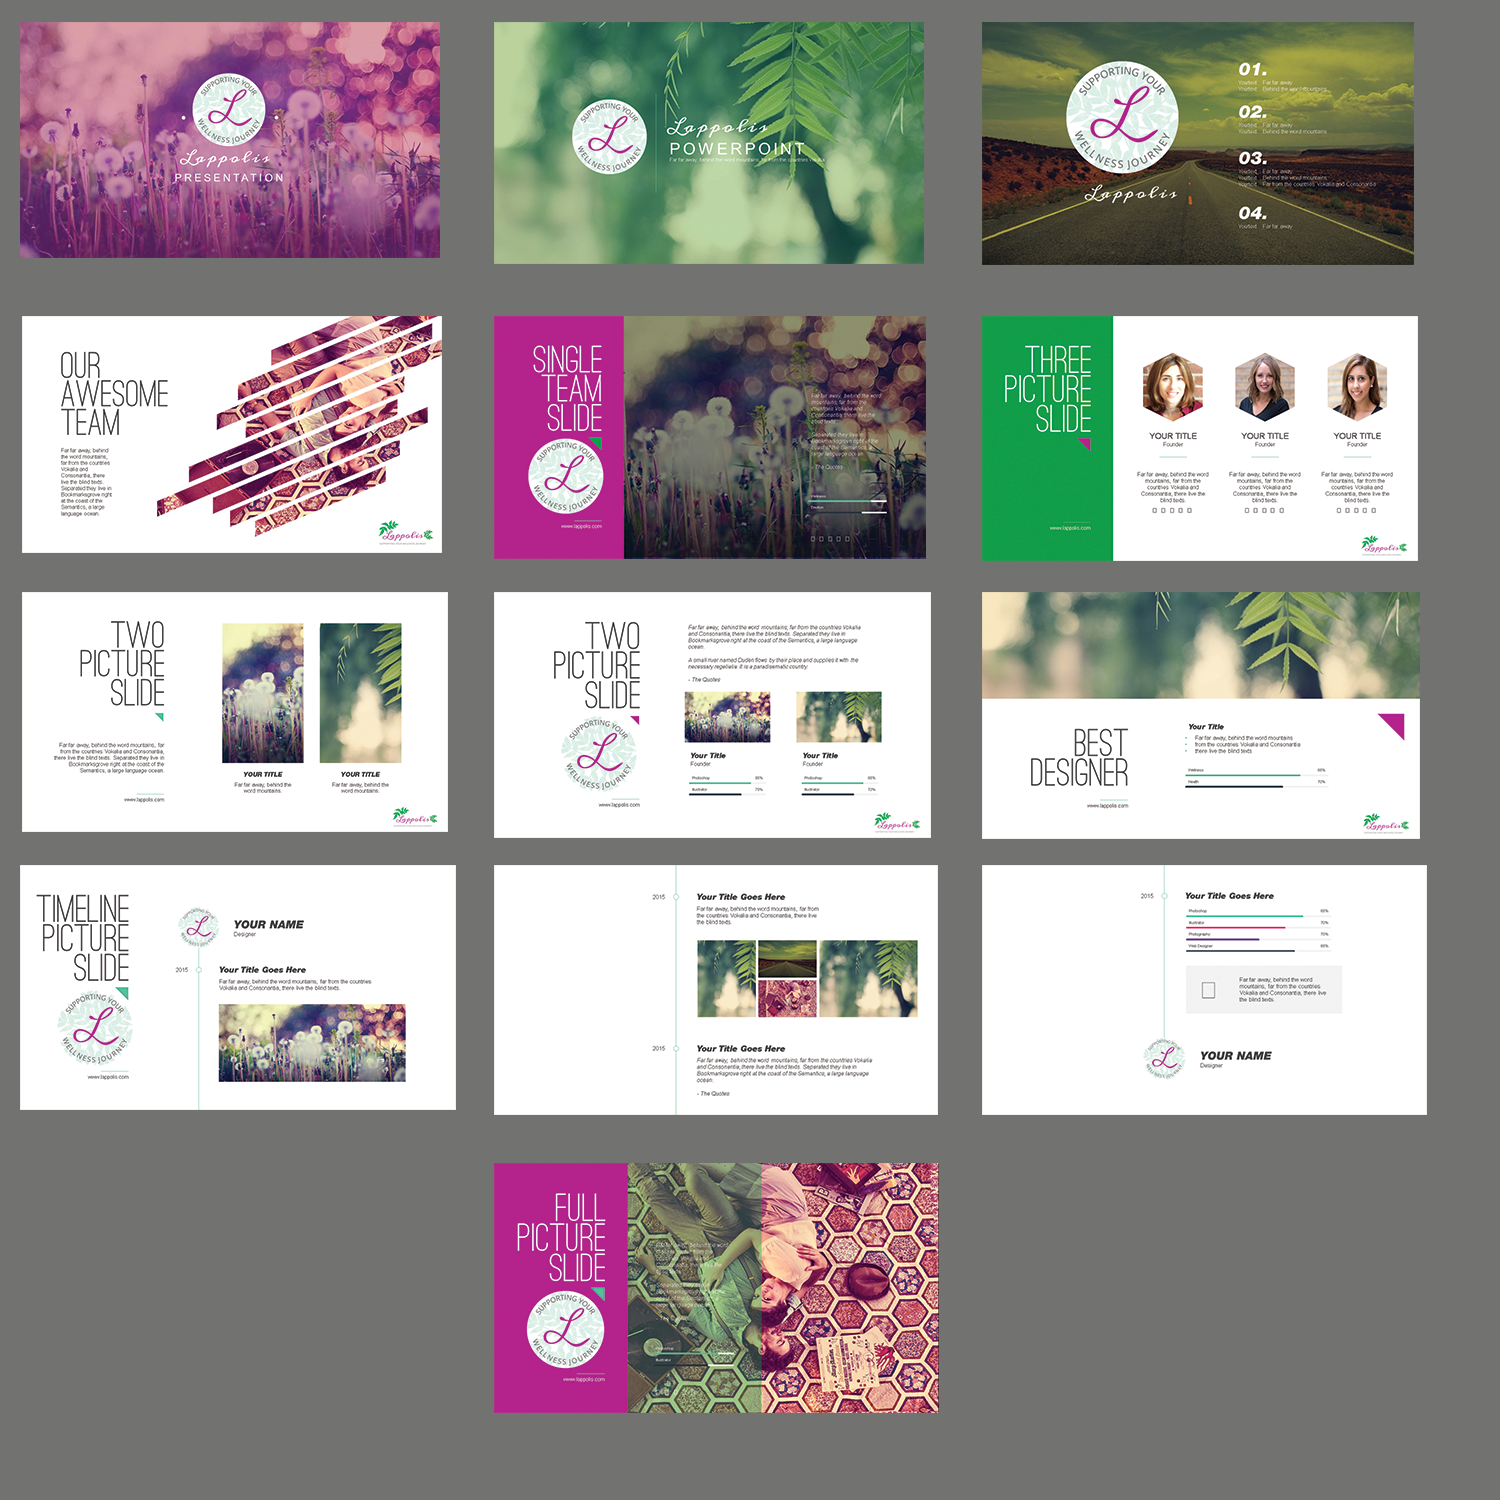 Powerpoint design by power design for wellness bold beautiful powerpoint design by power design for wellness bold beautiful powerpoint template design 10937558 toneelgroepblik Choice Image